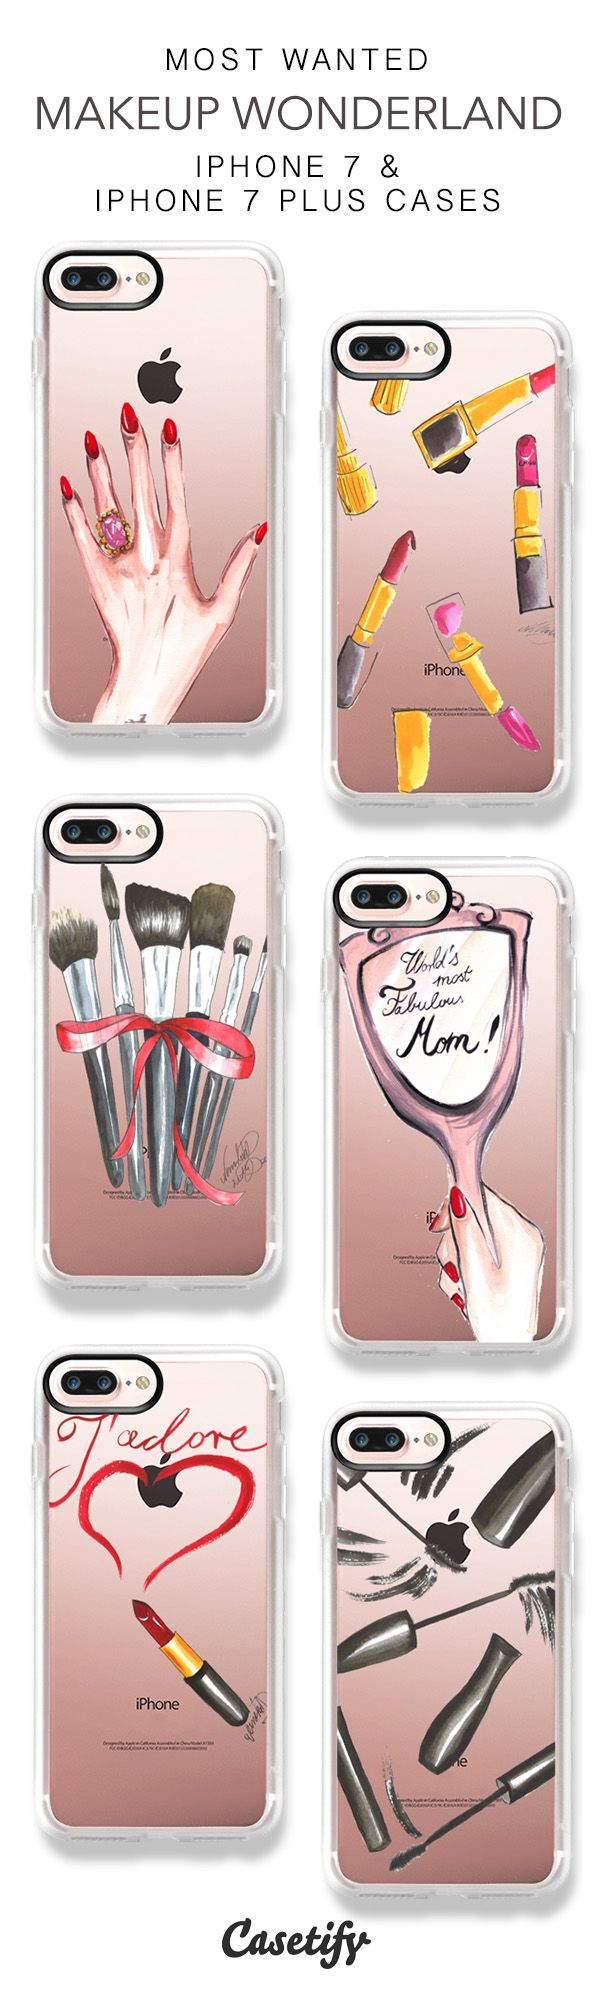 Most Wanted Makeup Wonderland iPhone 7 Cases & iPhone 7 Plus Cases here > https://www.casetify.com/dorinus/collection